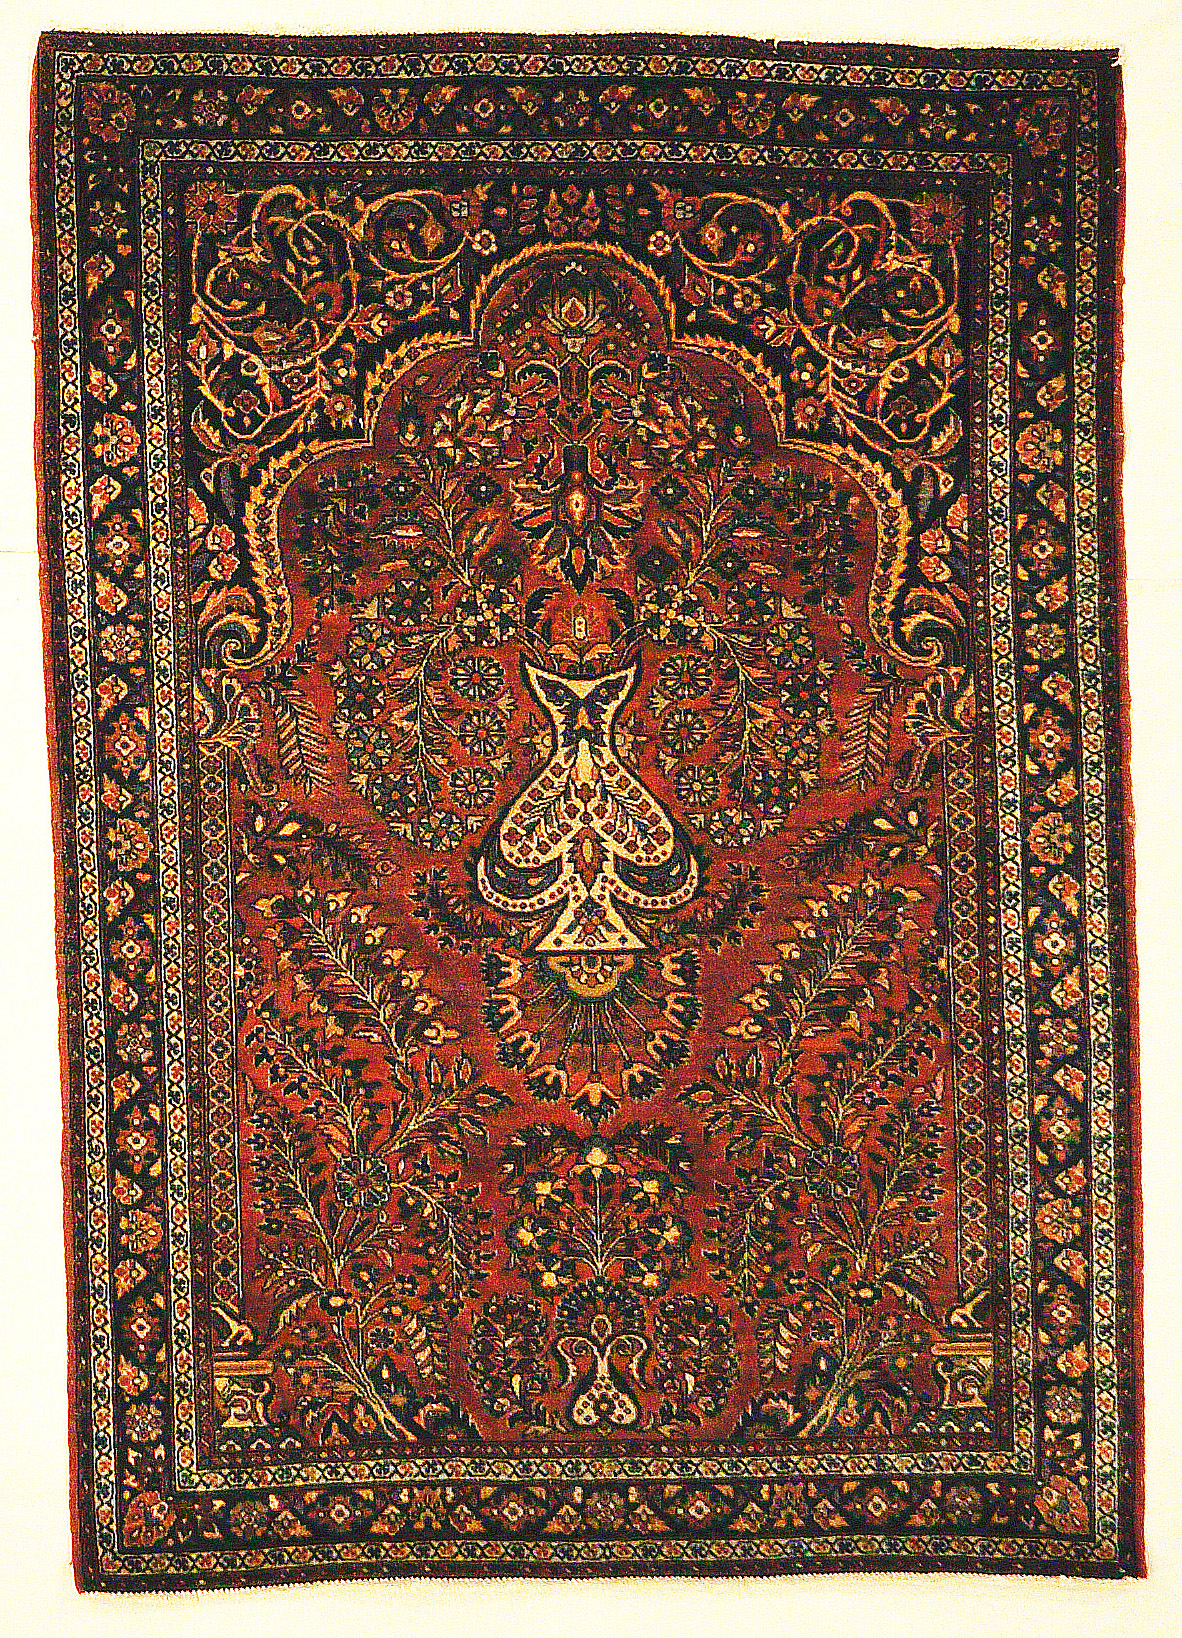 Antique Rare Persian Sarouk Prayer Rug. Genuine woven carpet art. Authentic and intricate design.